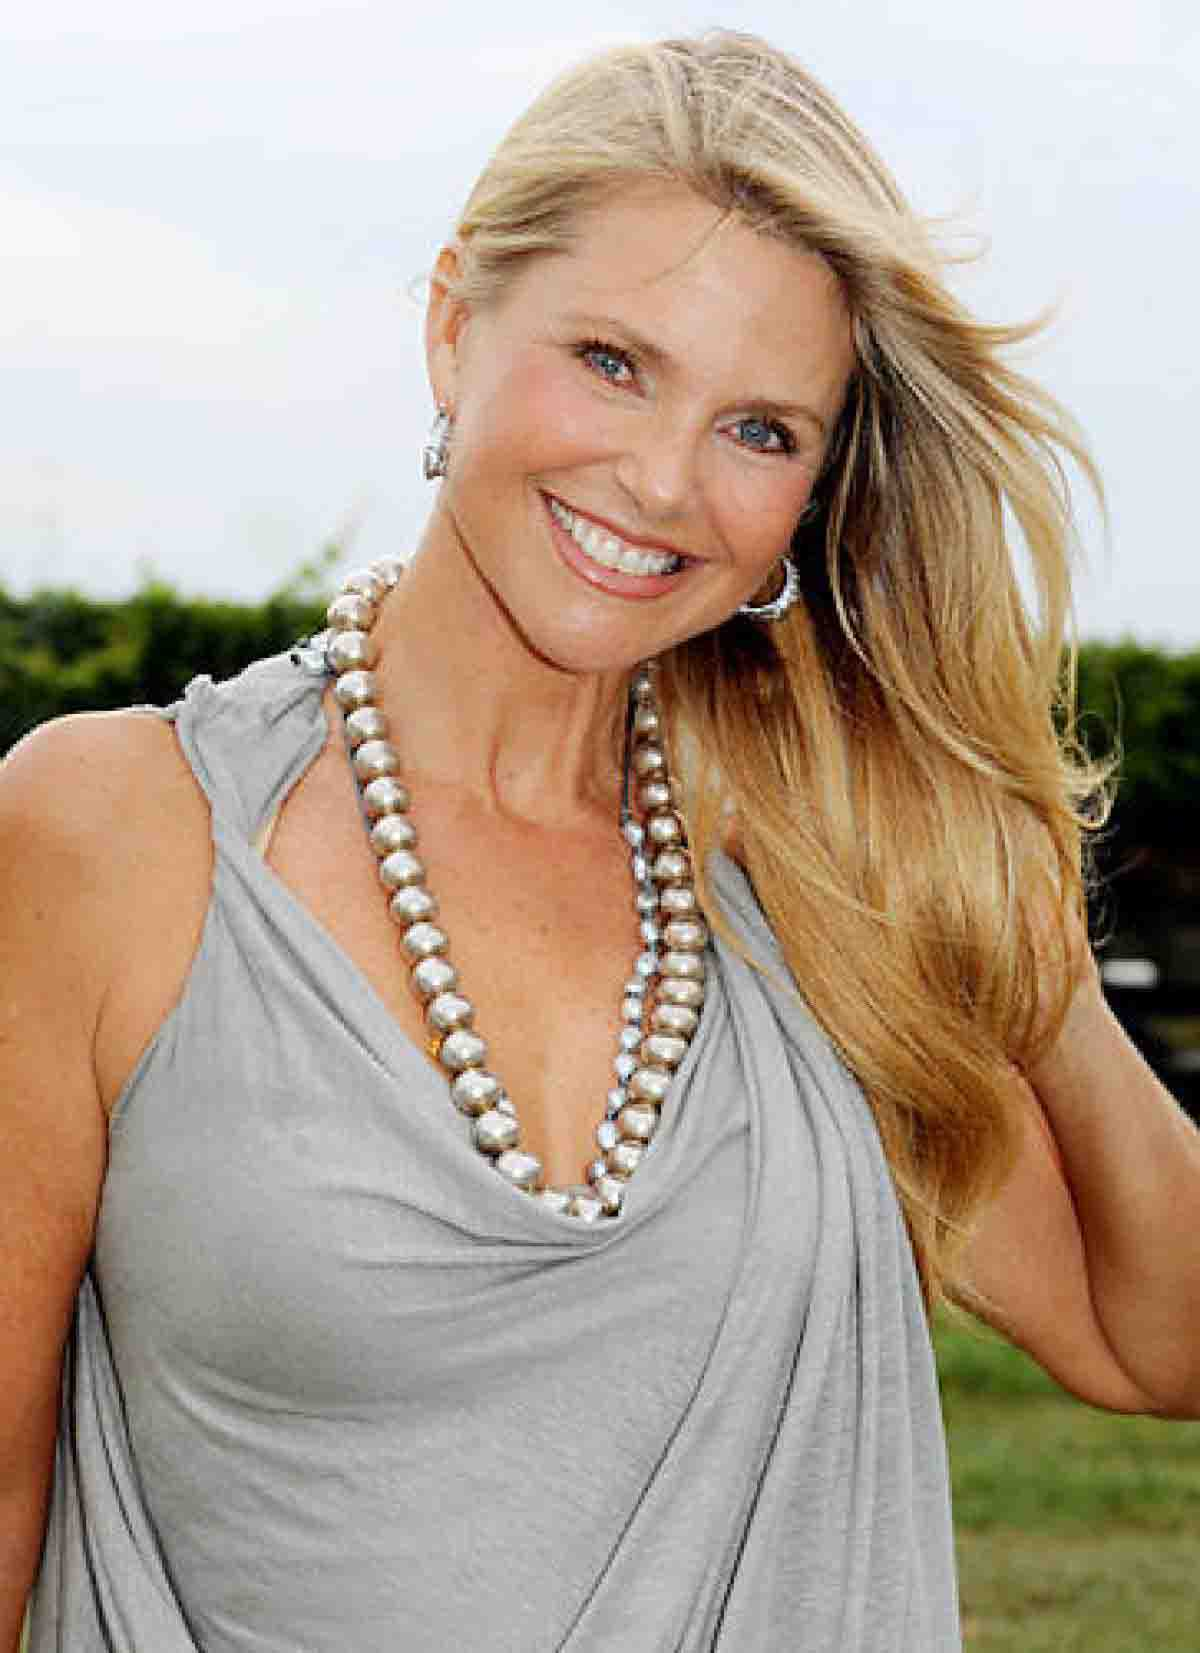 Christie Brinkley HD Wallpapers Free Download 4 Incrível: Essa mulher tem 67 anos!